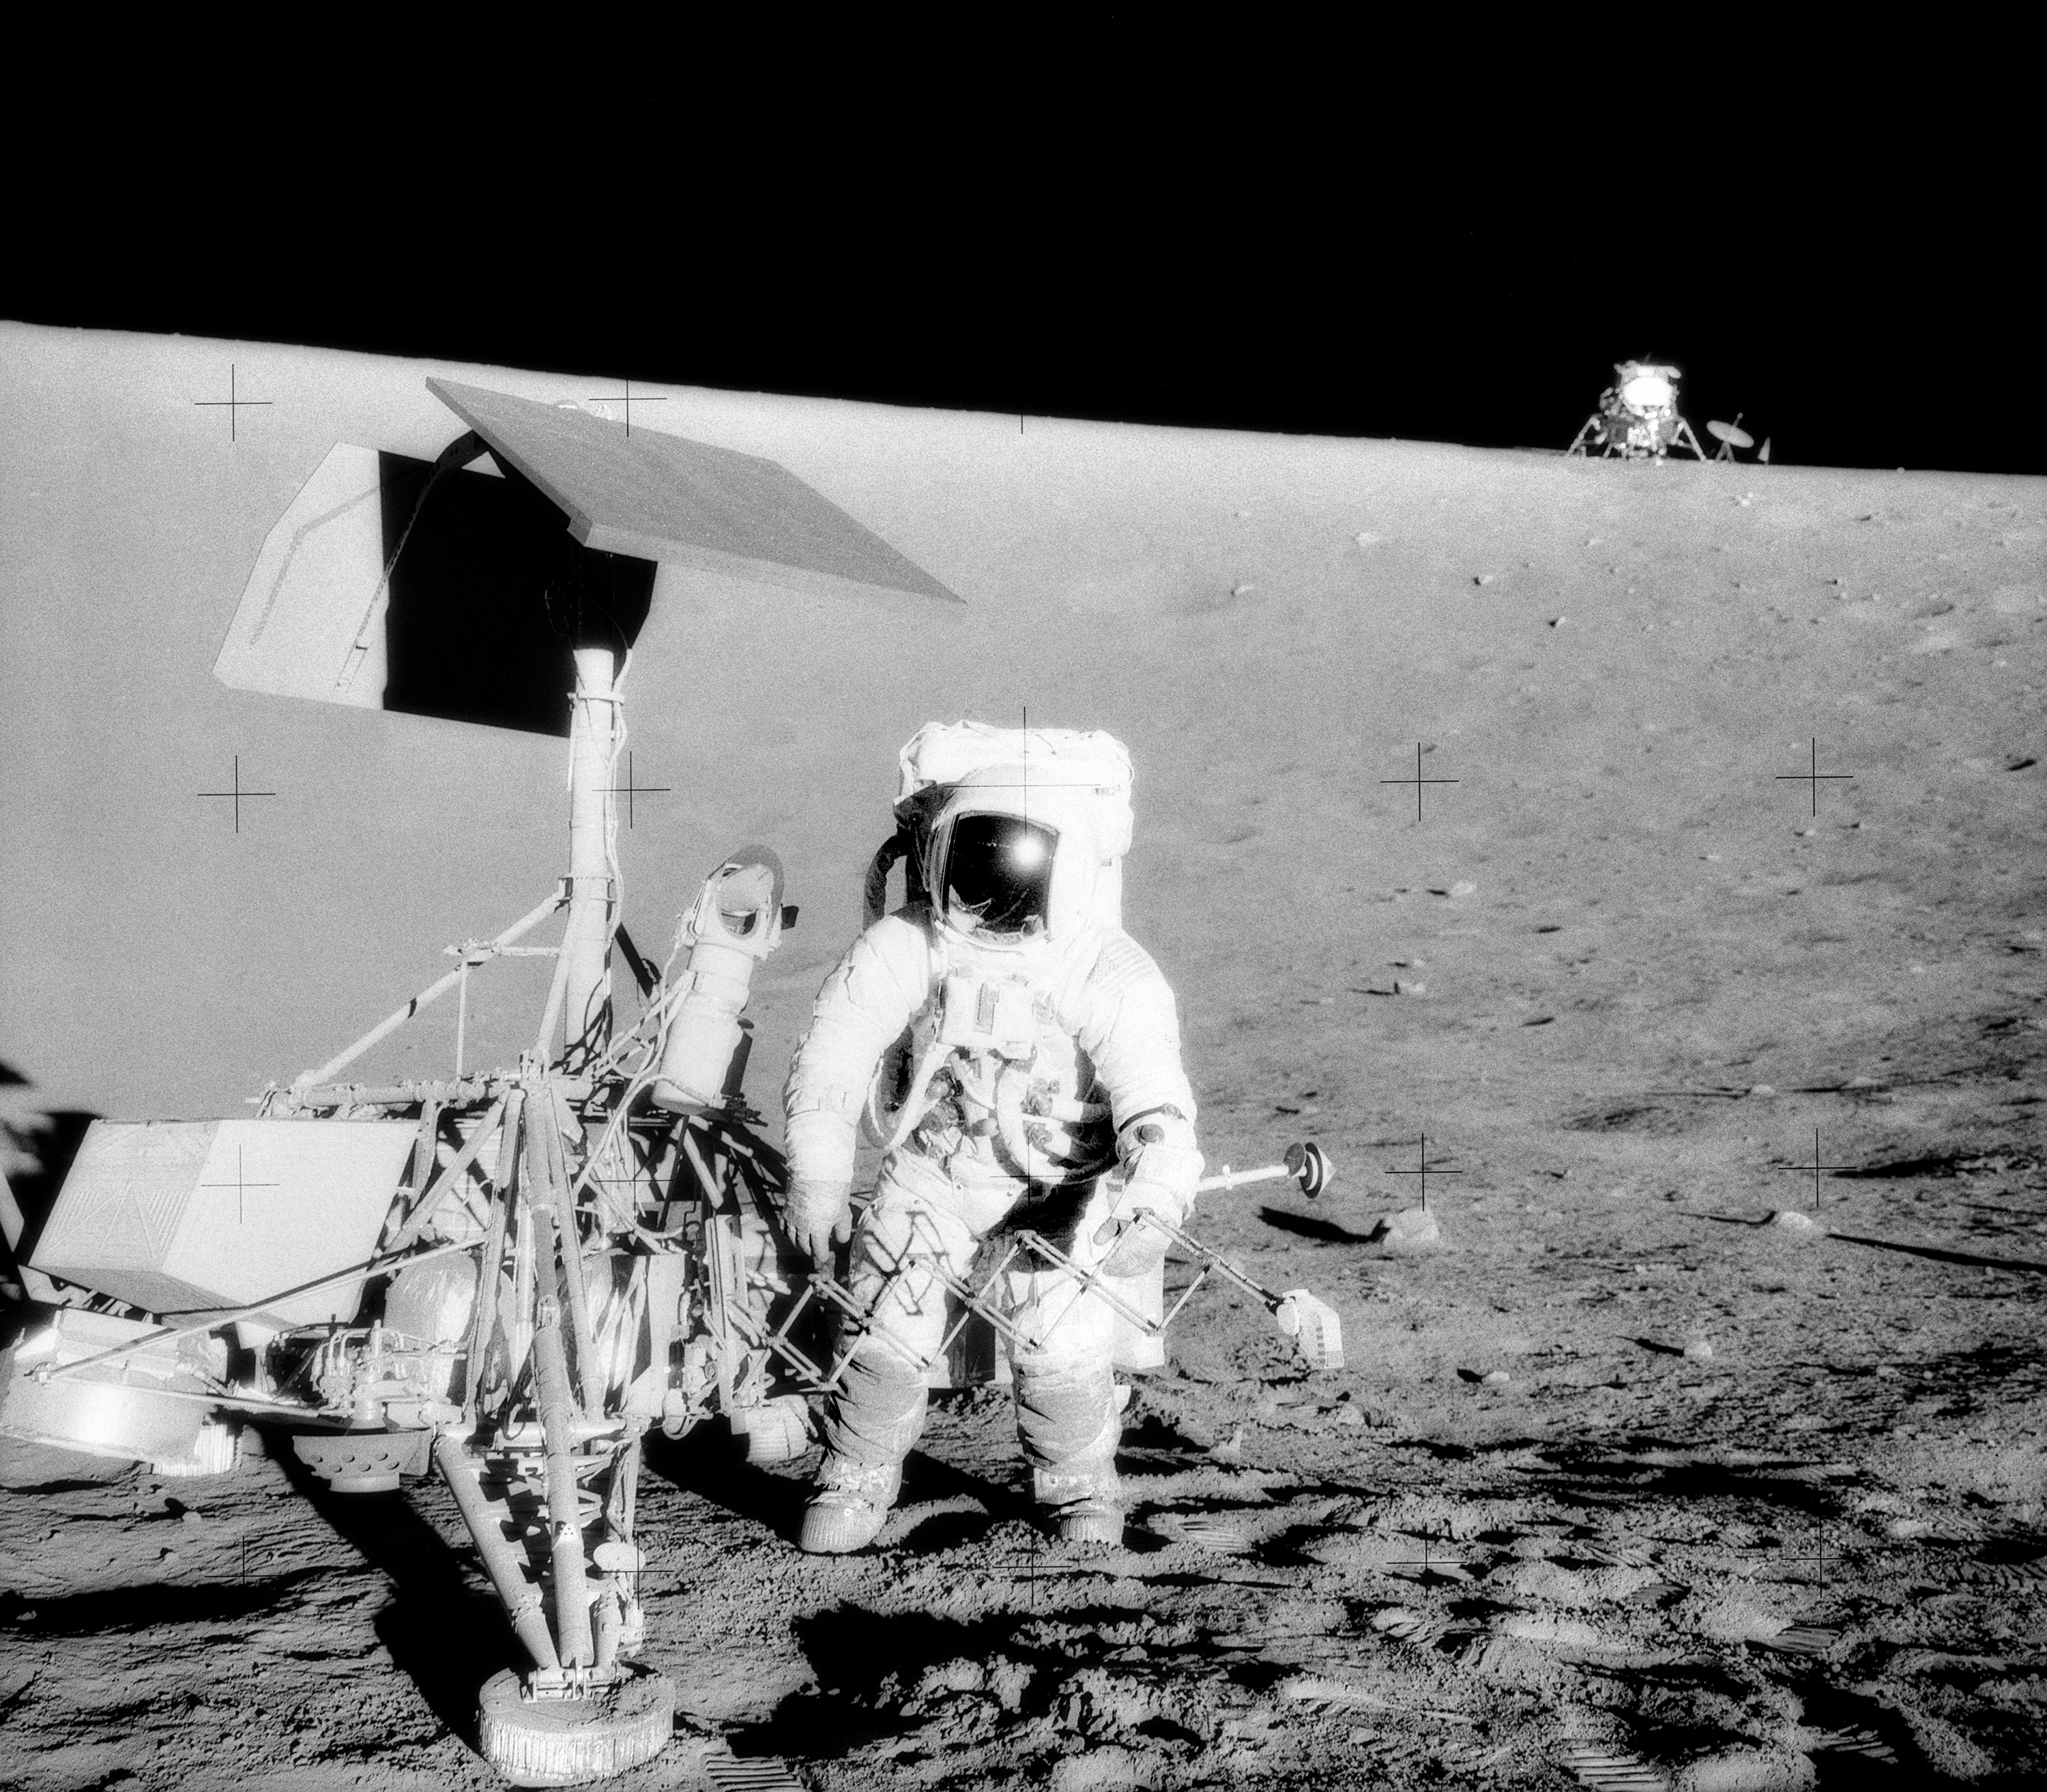 441355ab5f Surveyor 3 with Apollo 12 lander in background